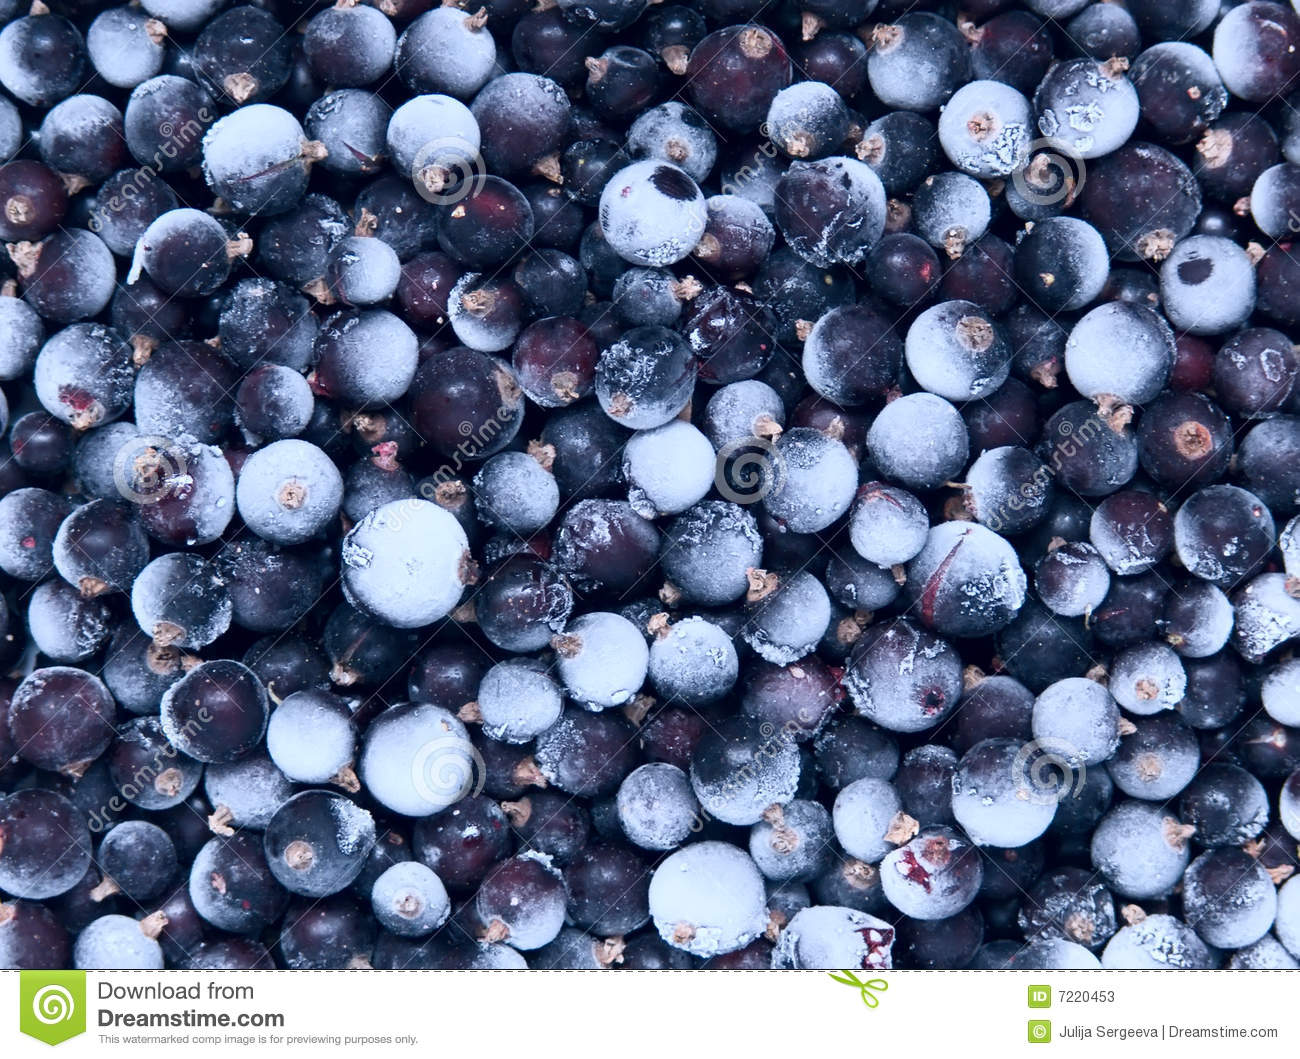 how to eat frozen berries